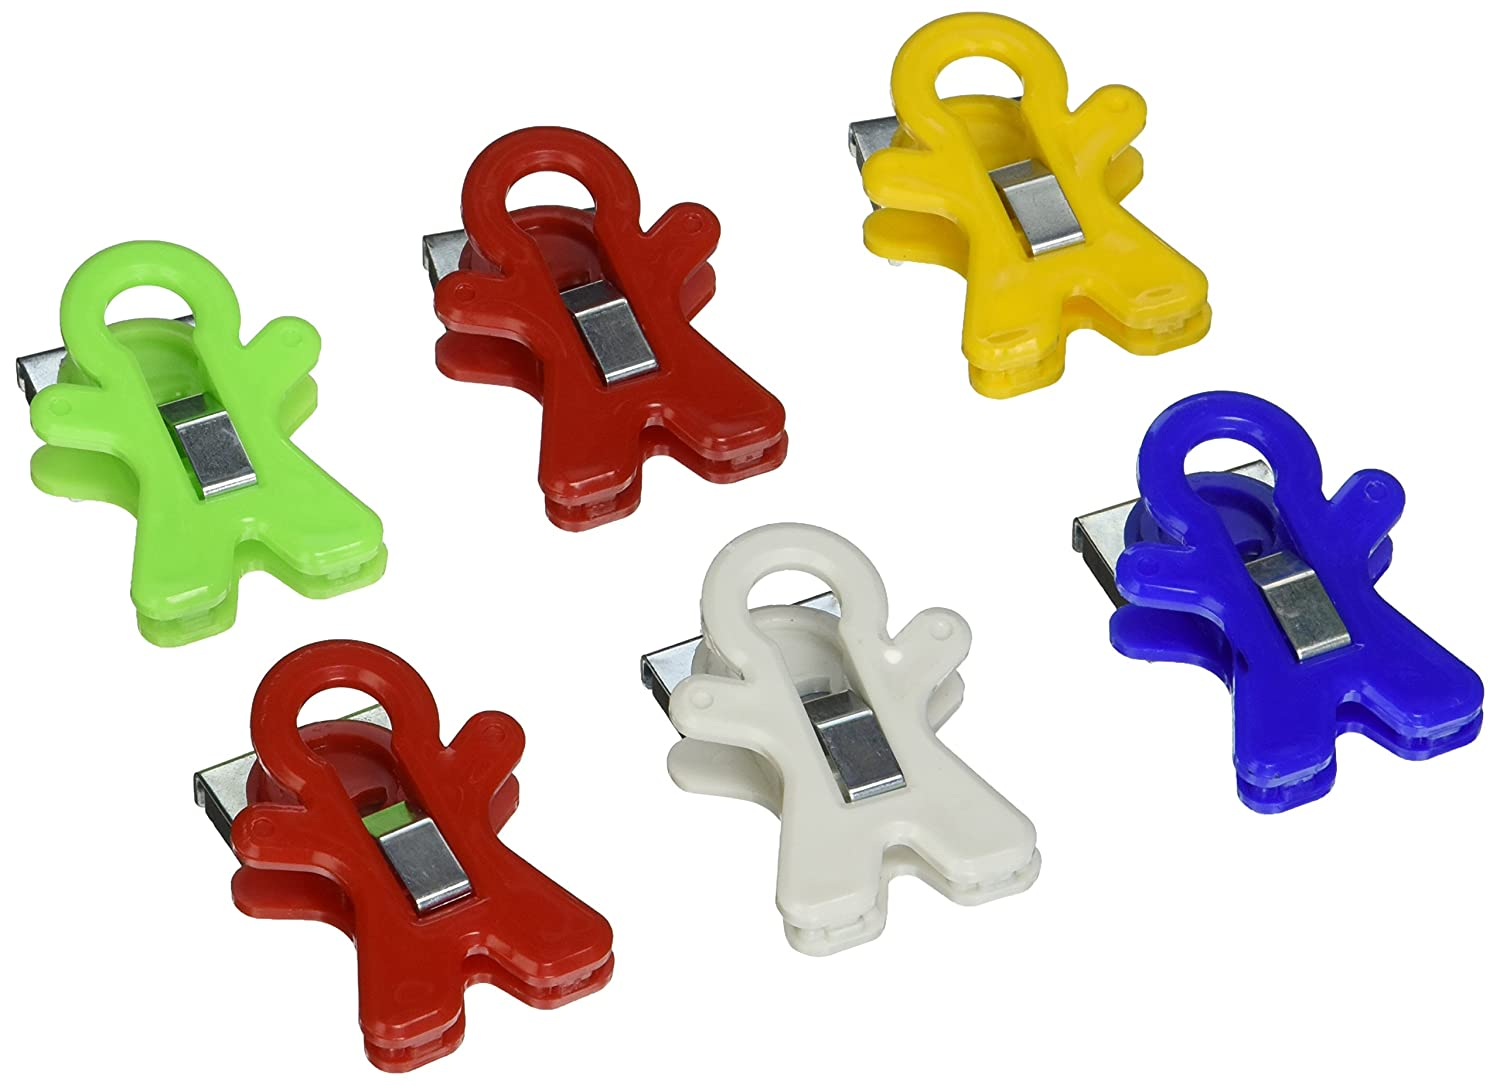 Adams 3303-50-0569 People Shaped Magnet Clip, Assorted Colors Adams Mfg Corp